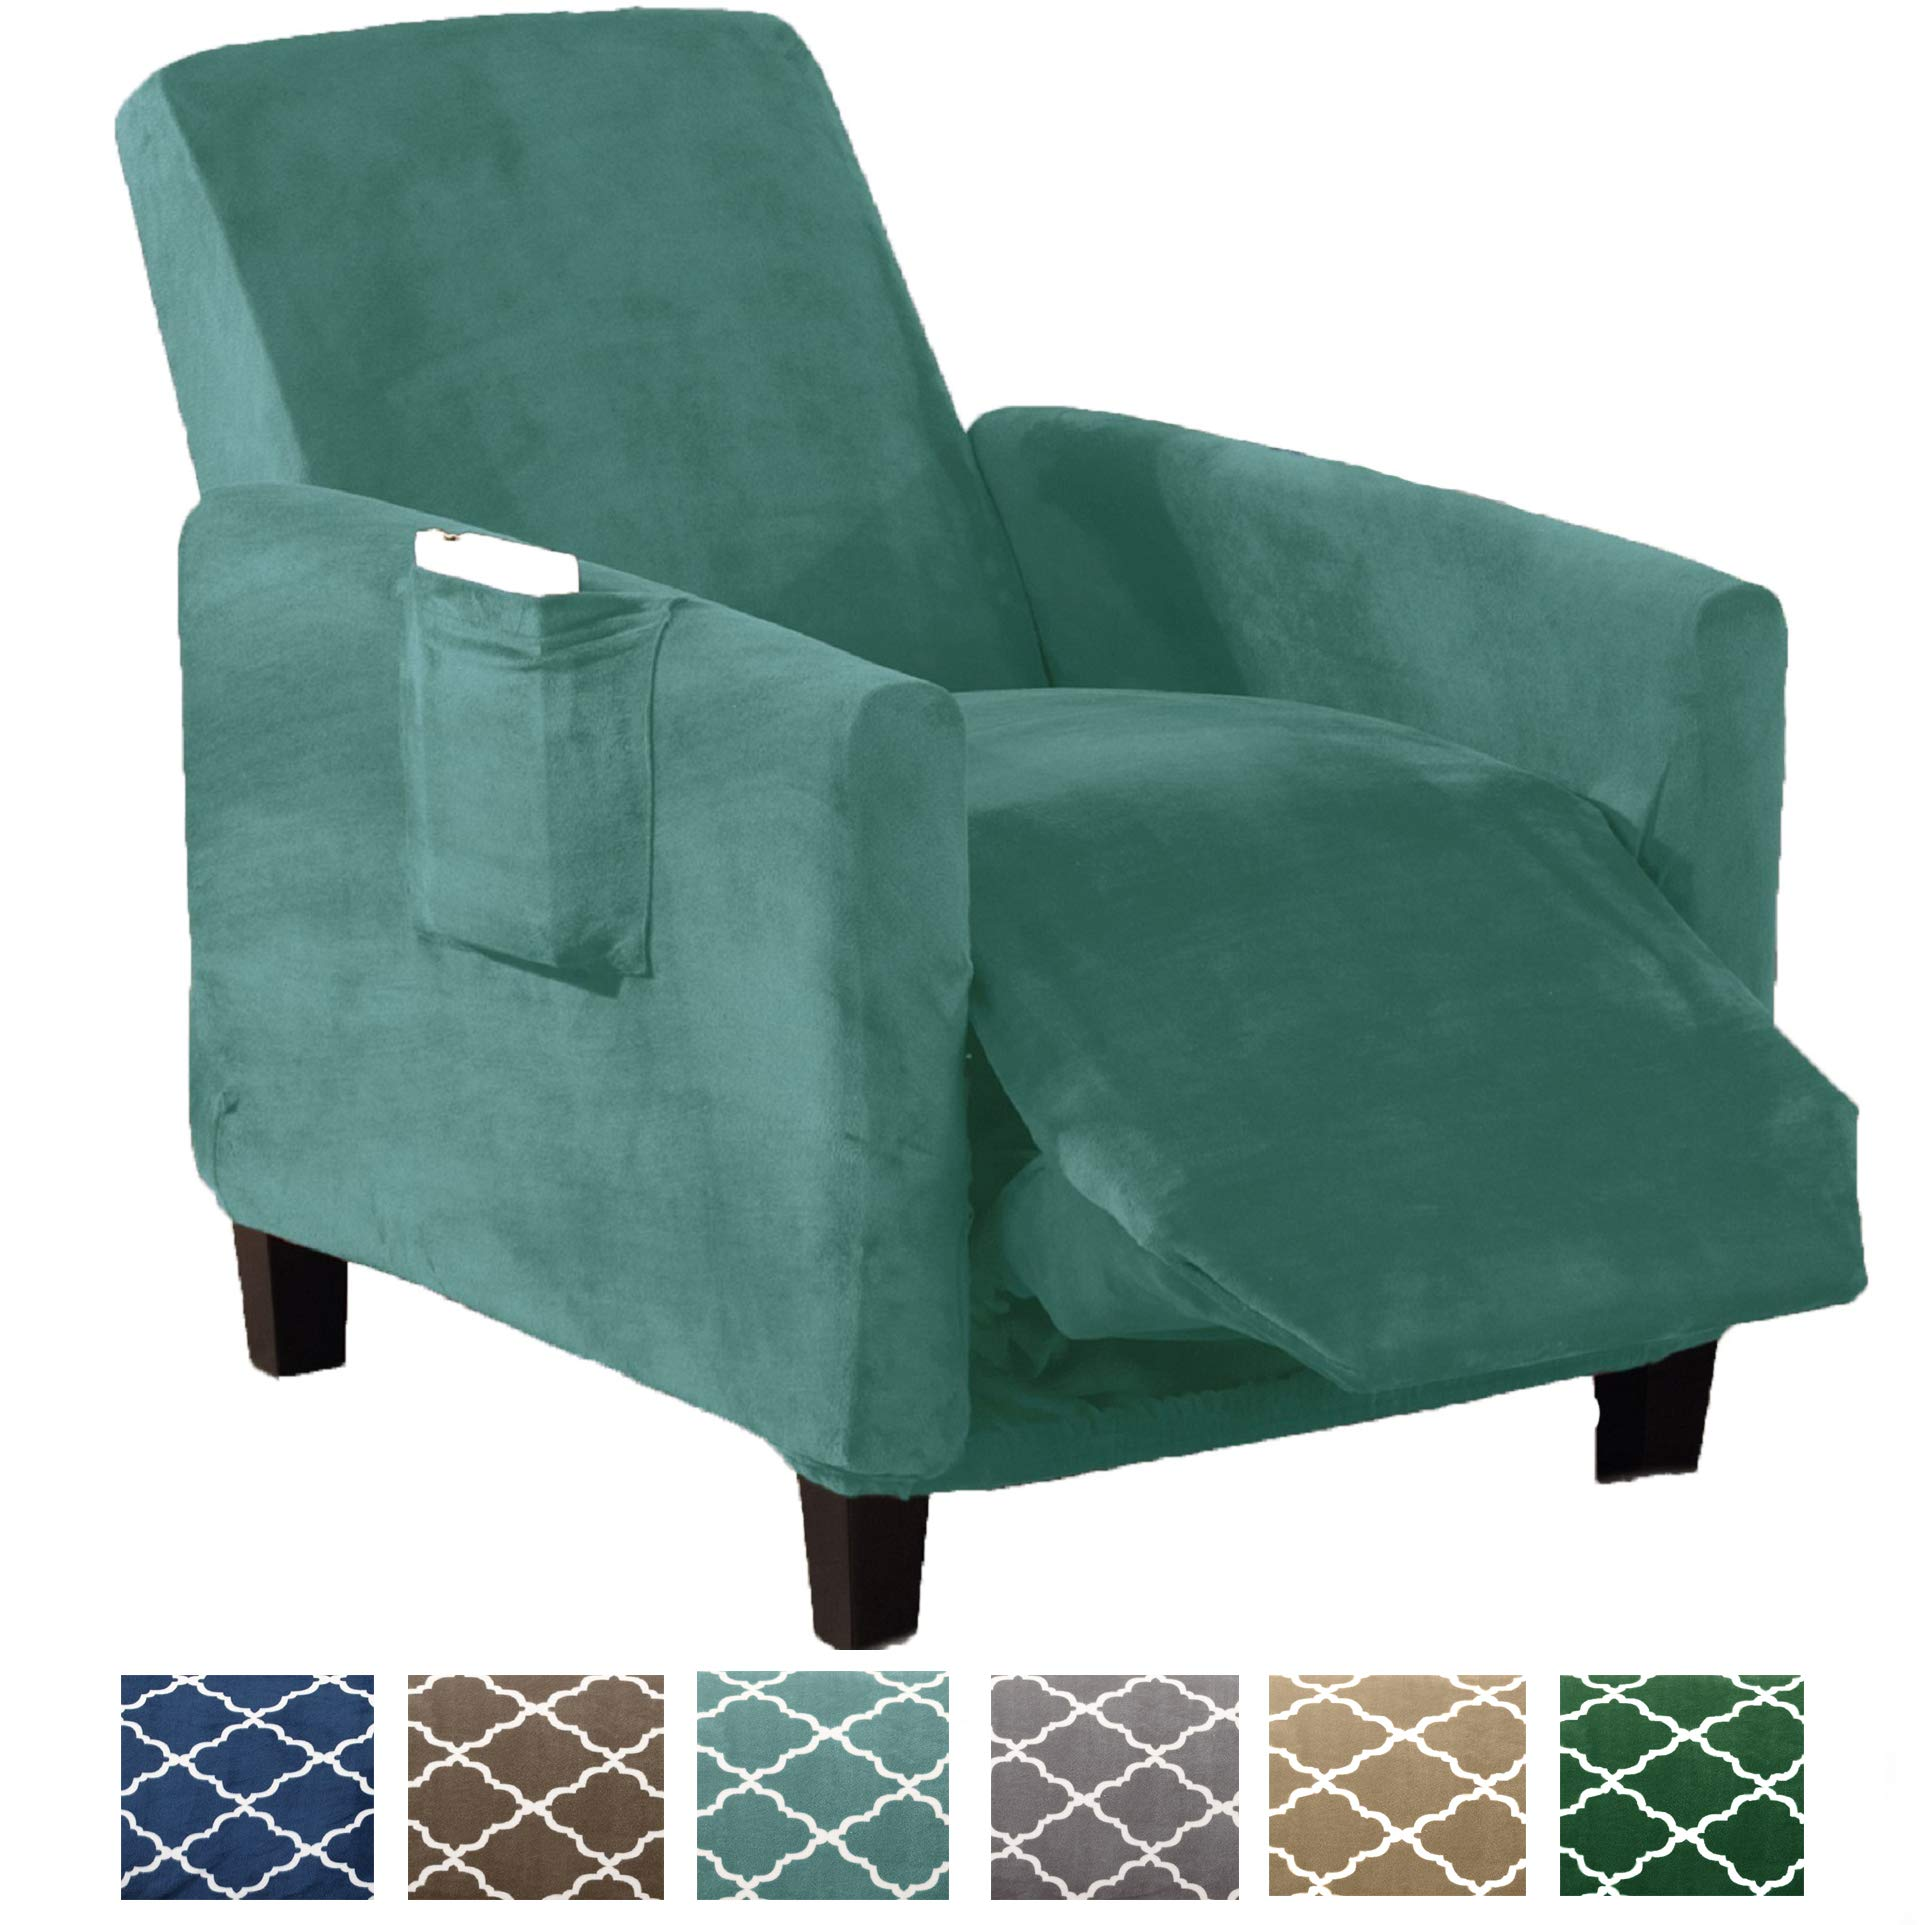 Great Bay Home Form Fit, Slip Resistant, Stylish Furniture Shield/Protector Featuring Velvet Plush Fabric Magnolia Collection Strapless Slipcover (Recliner, Aqua - Solid)